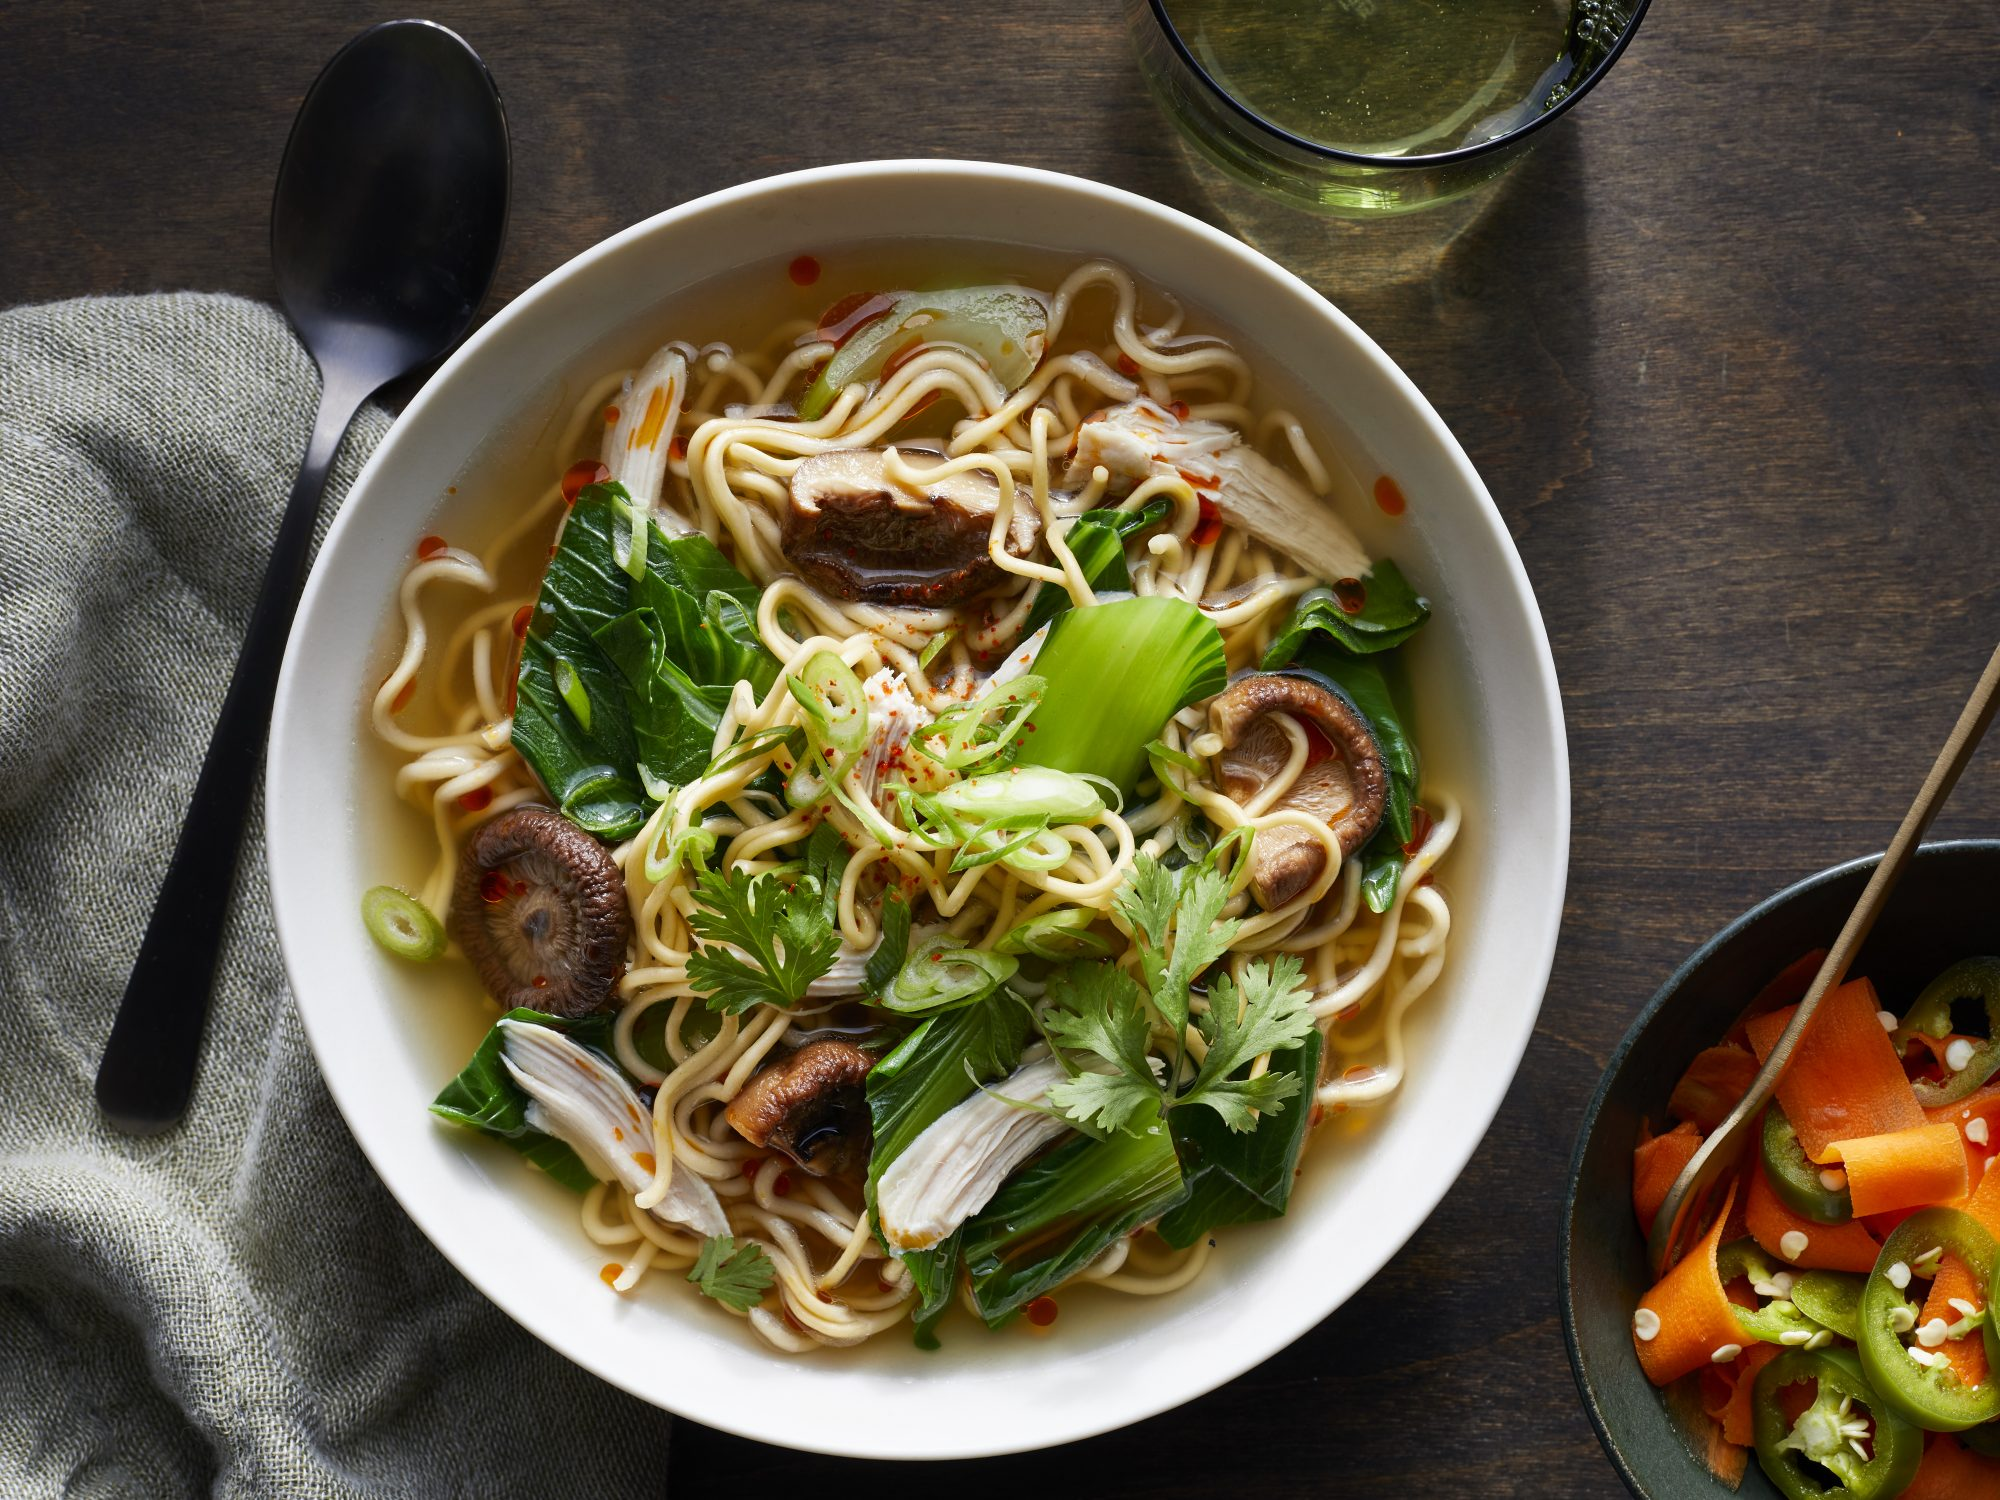 Leftover Roasted Turkey and Chinese Egg Noodle Soup